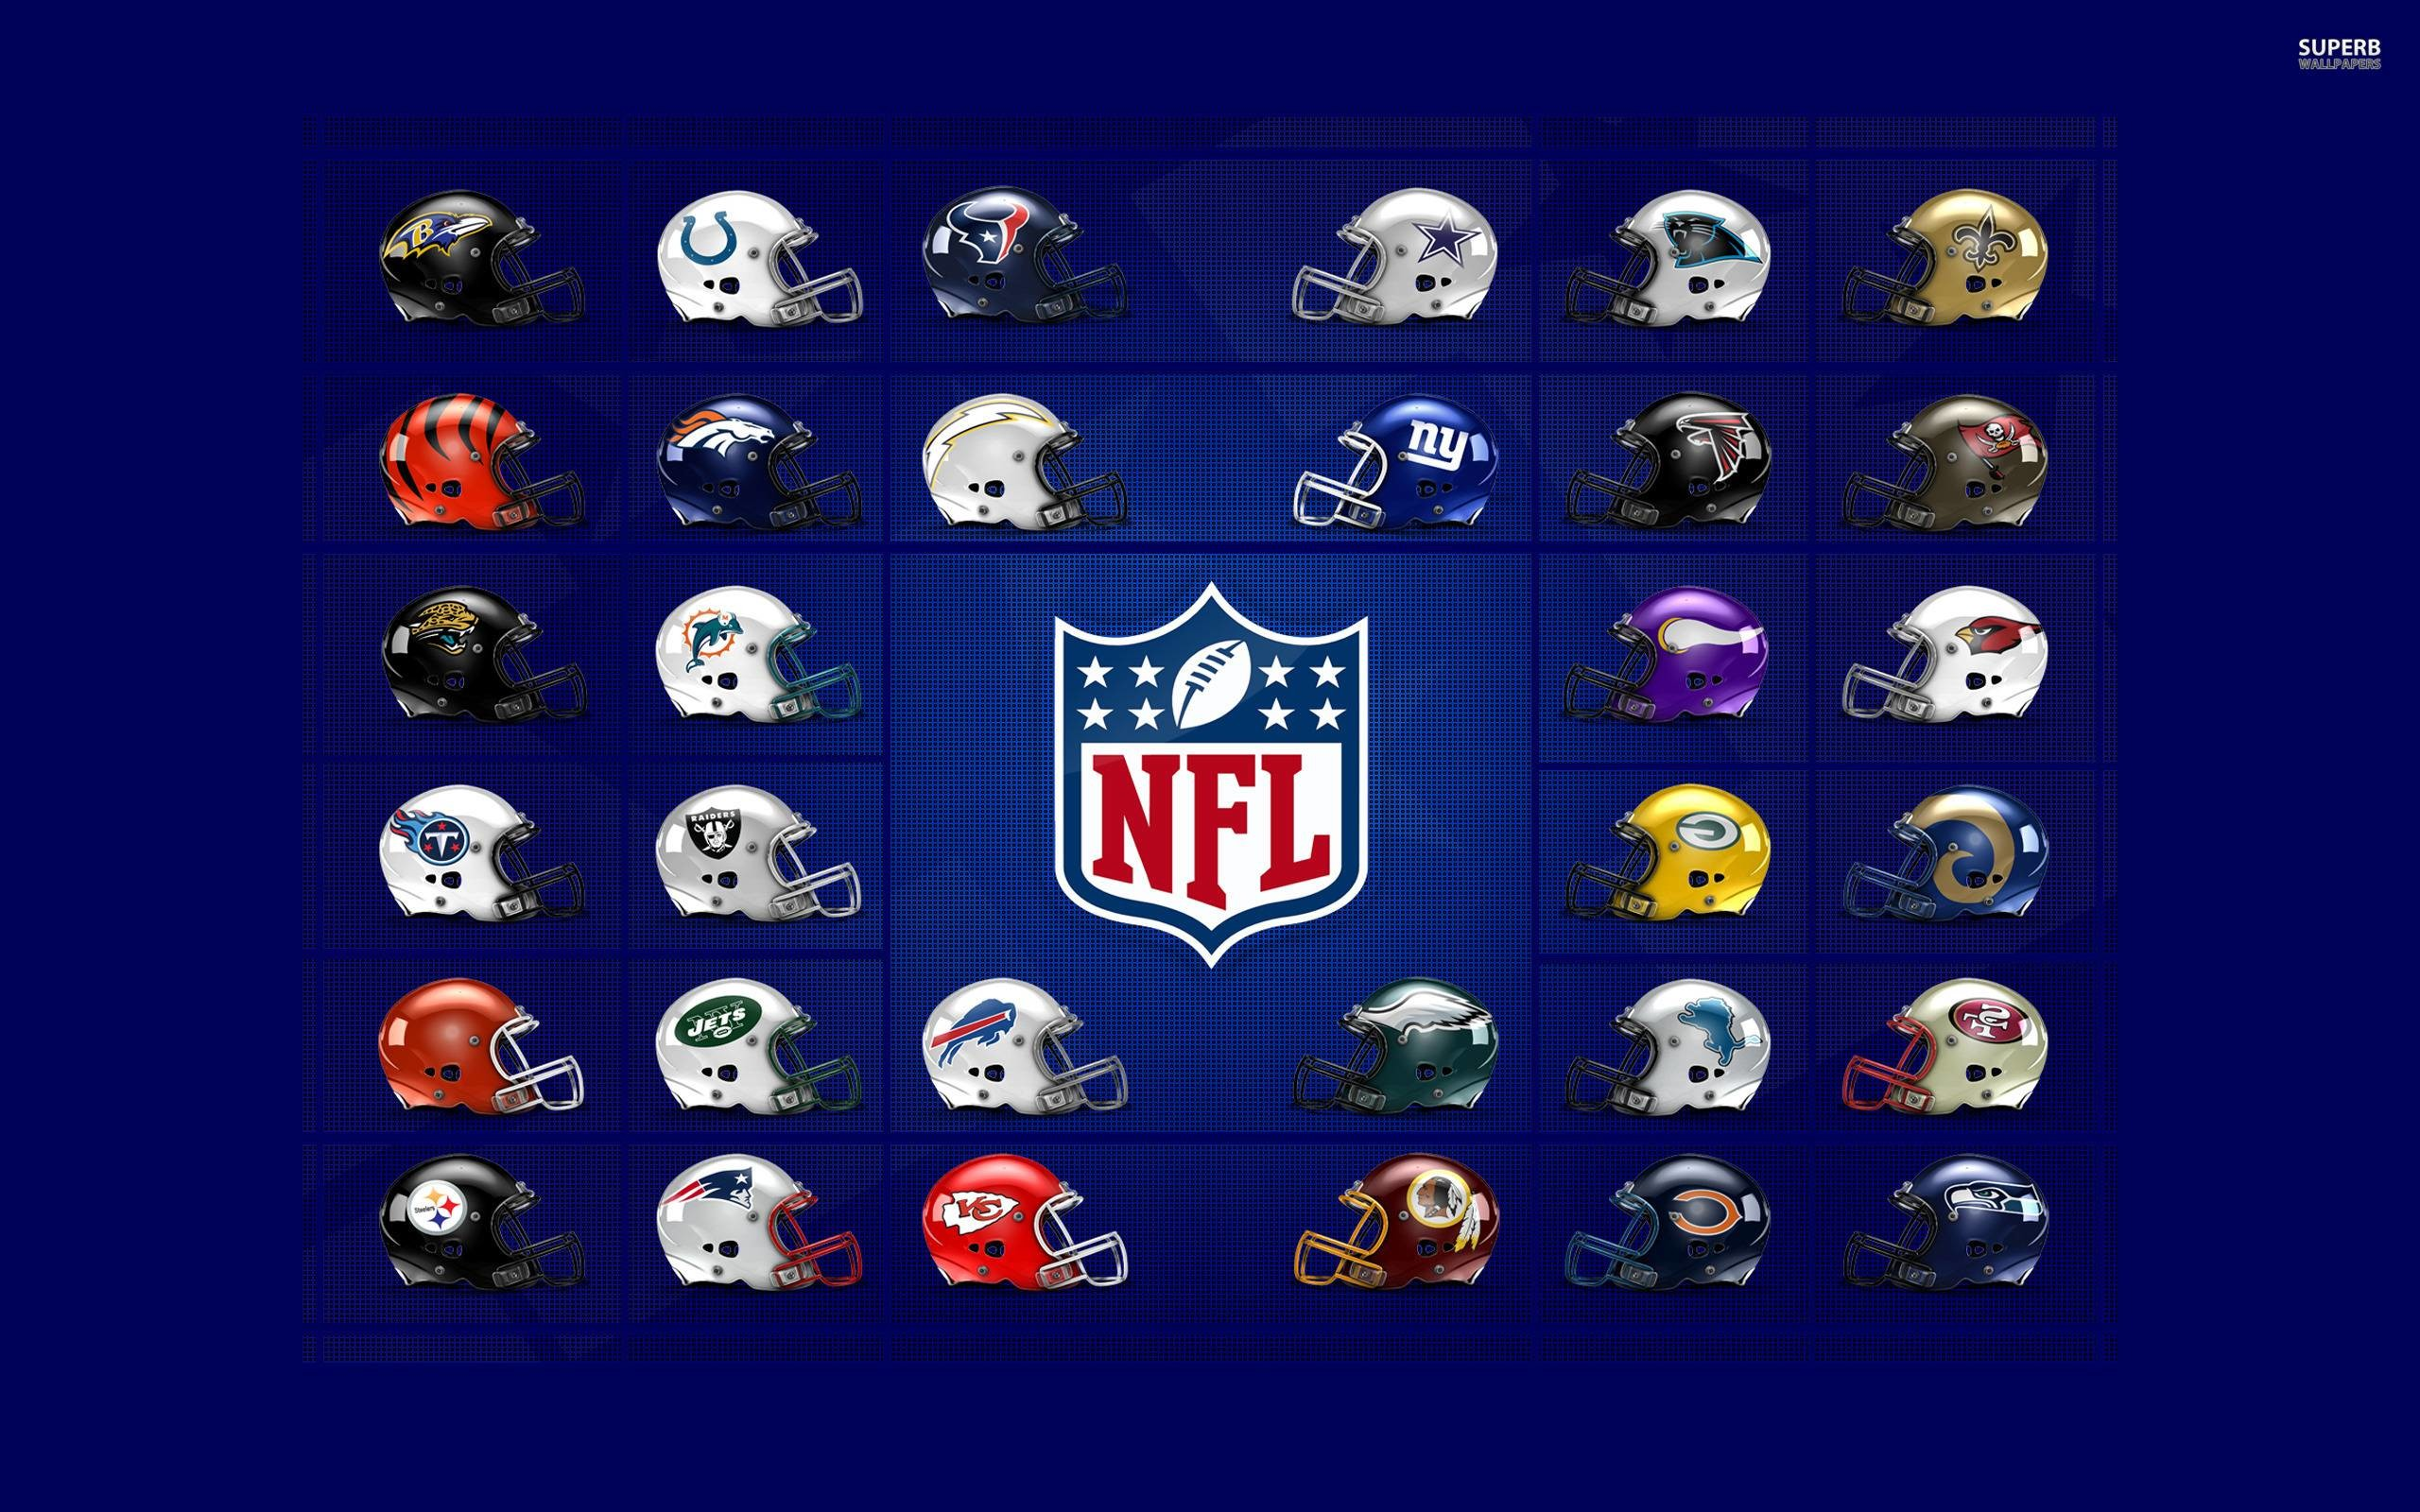 2560x1600 NFL Logos wallpaper - Sport wallpapers - #